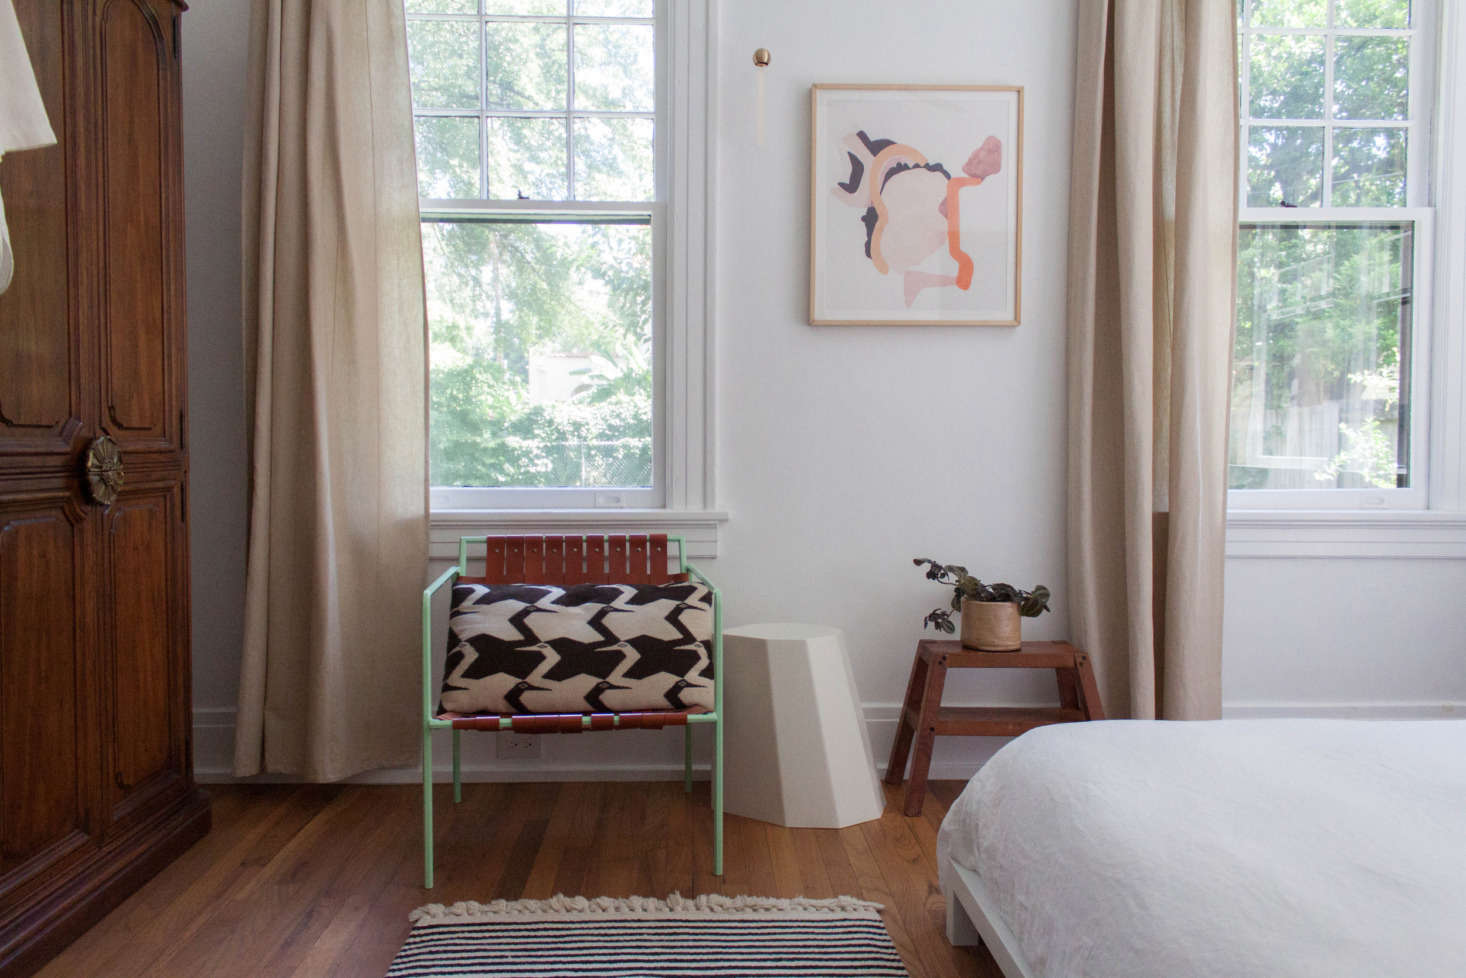 Floor-length Ikea curtains soften the look in the bedroom. The Amigo Modern chair was a gift from a friend, the wood stool a gift from Gabi&#8